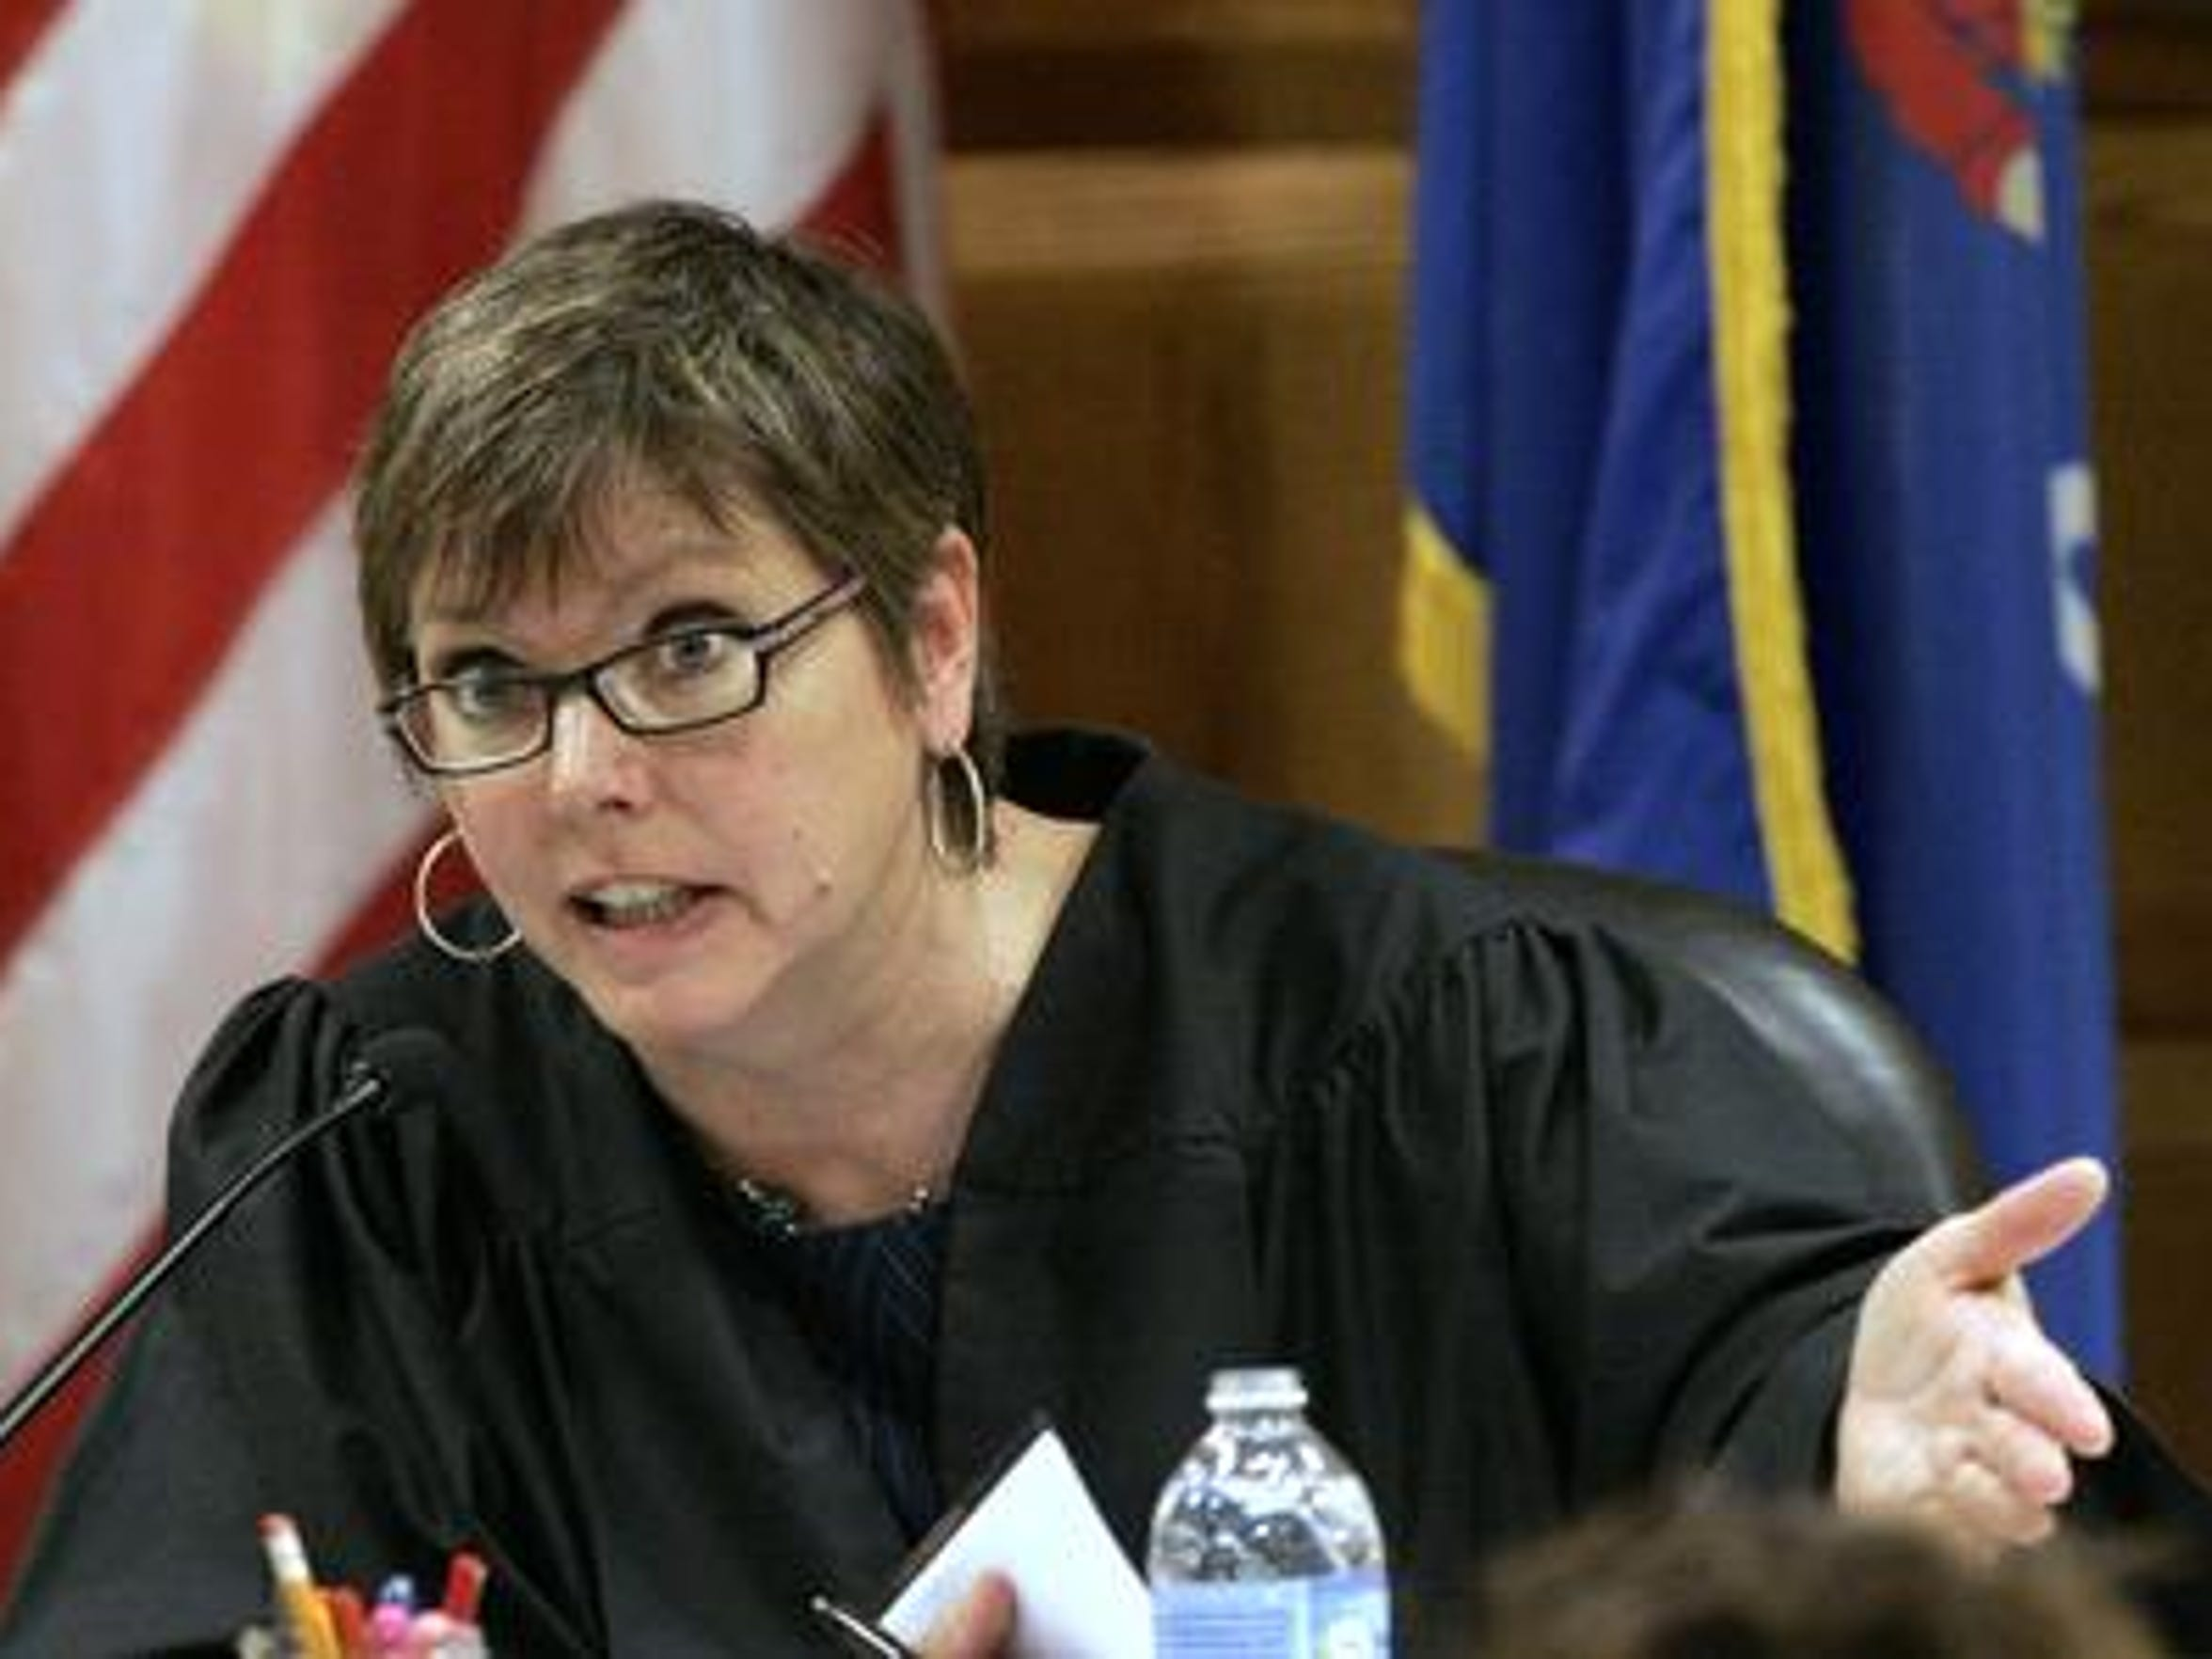 Outagamie County Judge Nancy Krueger sharply criticized the performance of the Outagamie County Sheriff's Office in the Lara Plamann murder case.